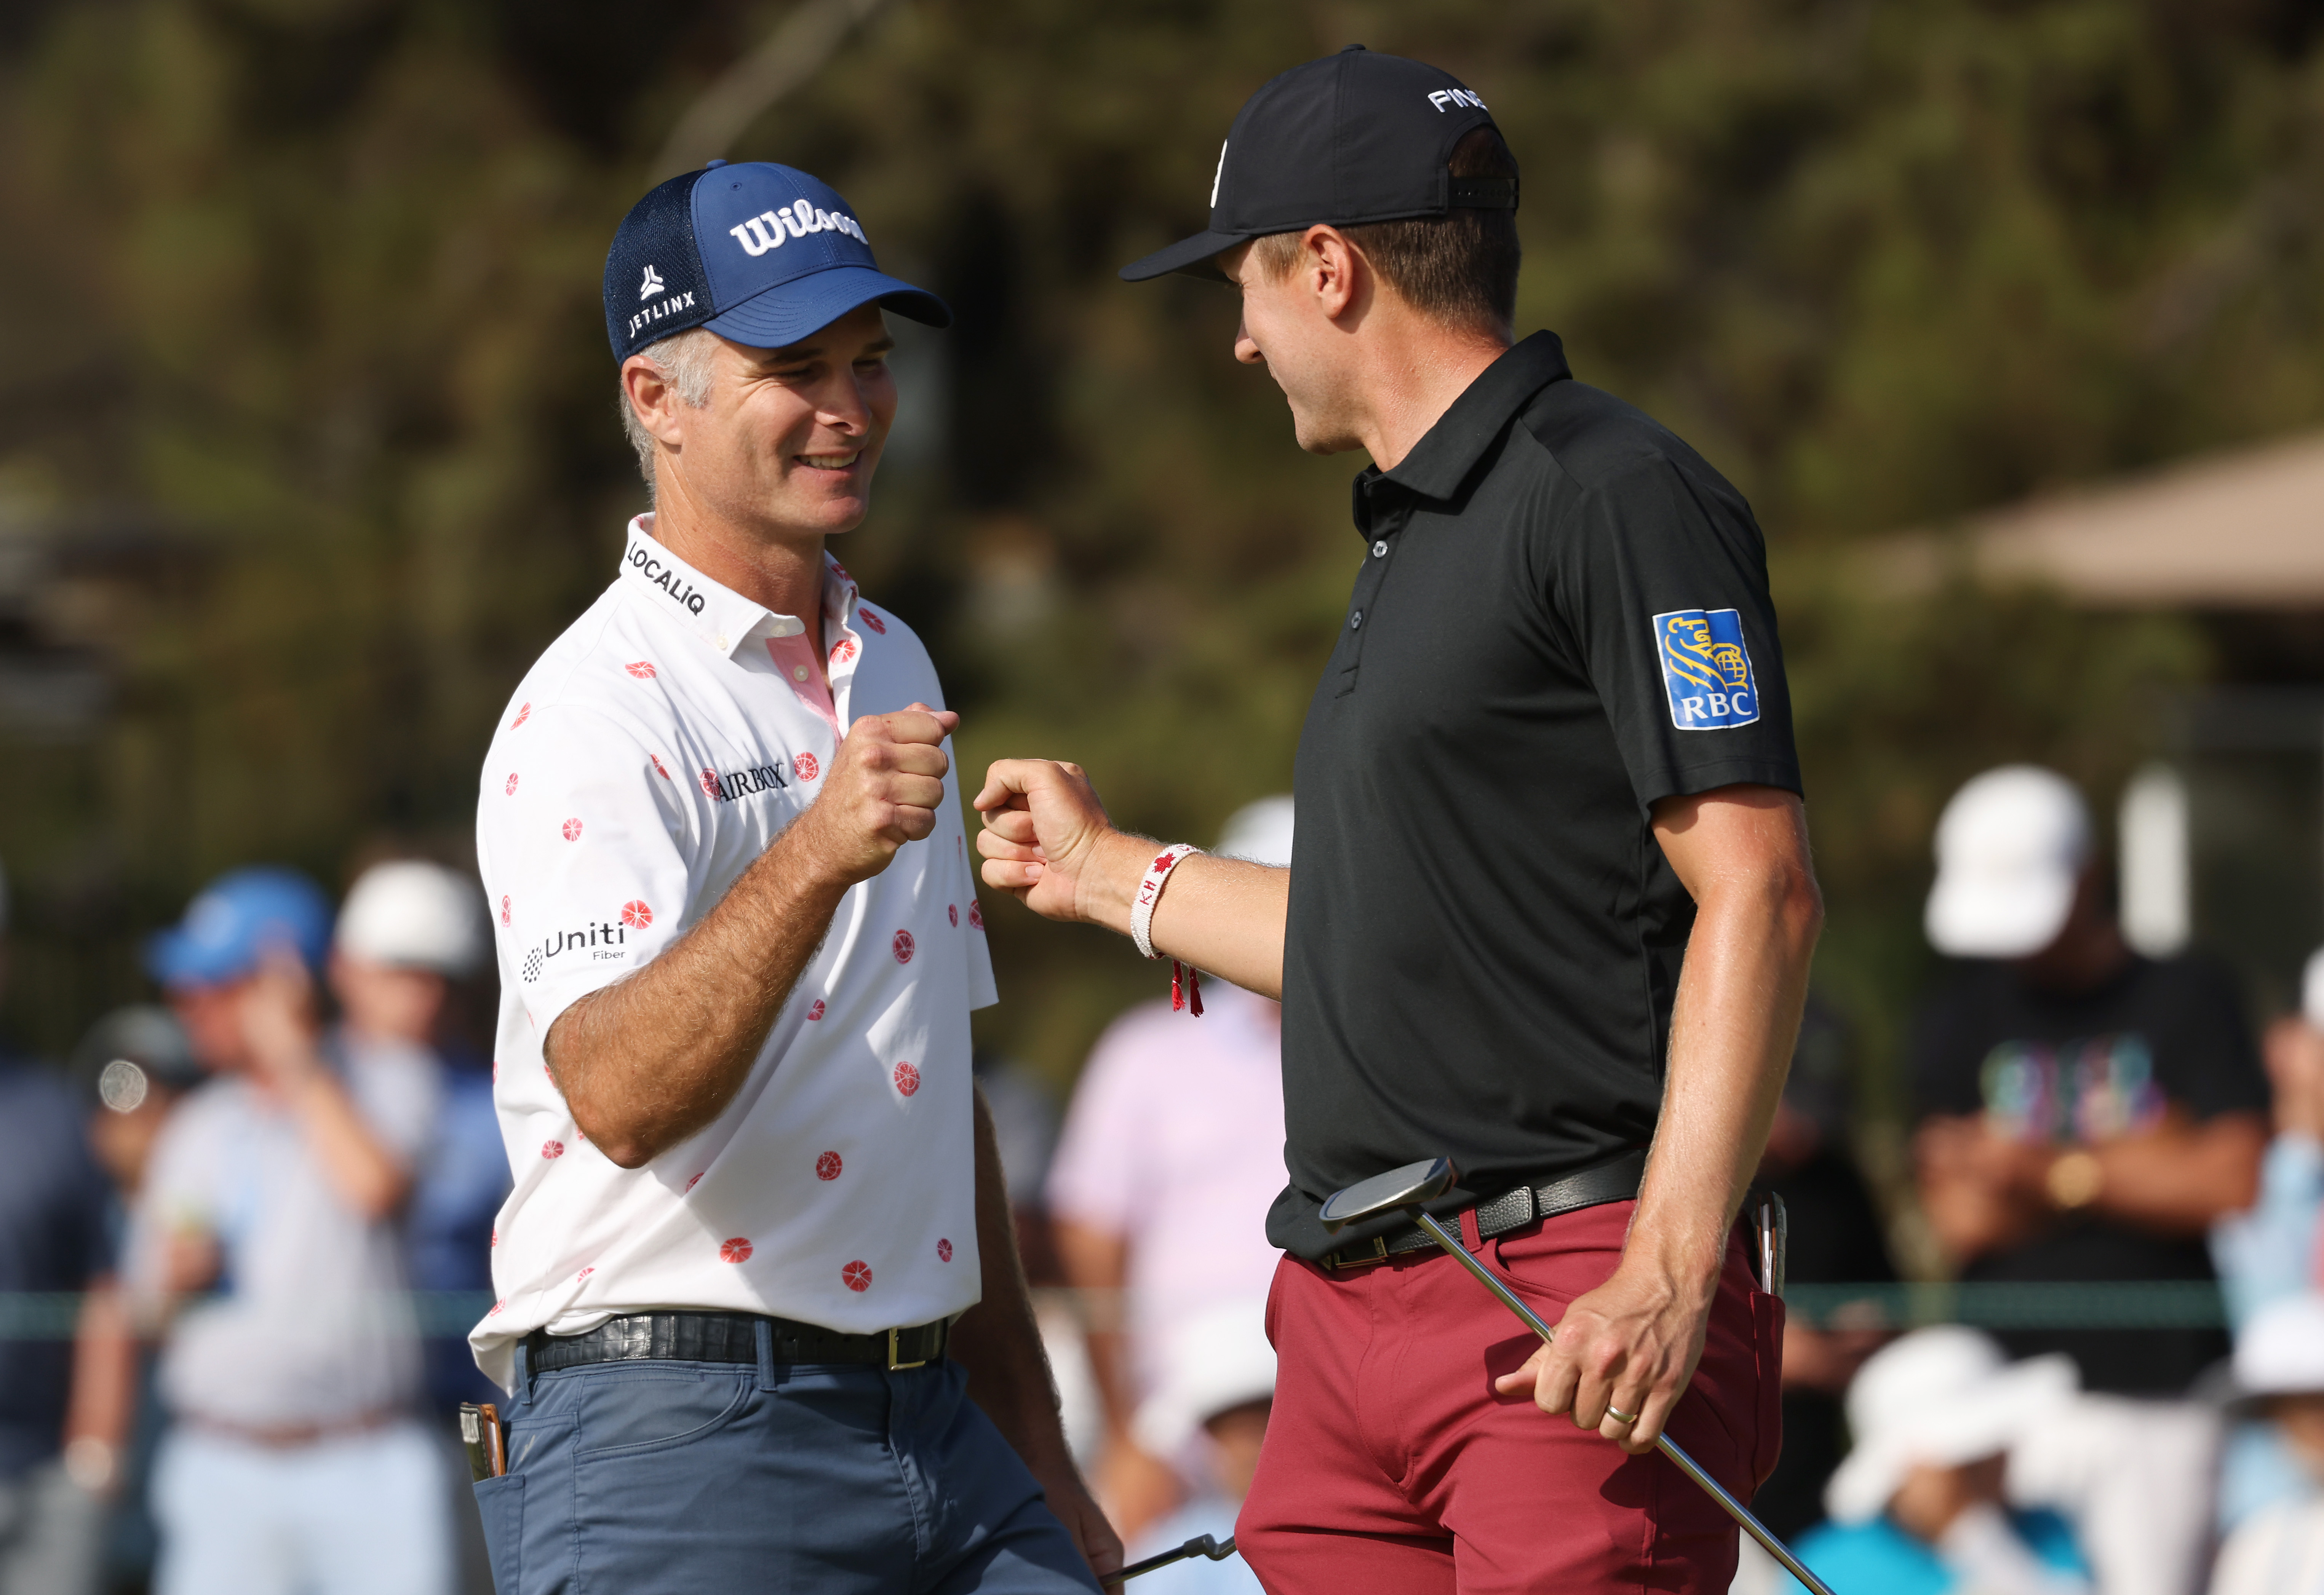 Kevin Streelman of the United States celebrates his putt on the 18th green with Mackenzie Hughes of Canada during the third round of the 2021 U.S. Open at Torrey Pines Golf Course (South Course) on June 19, 2021 in San Diego, California.